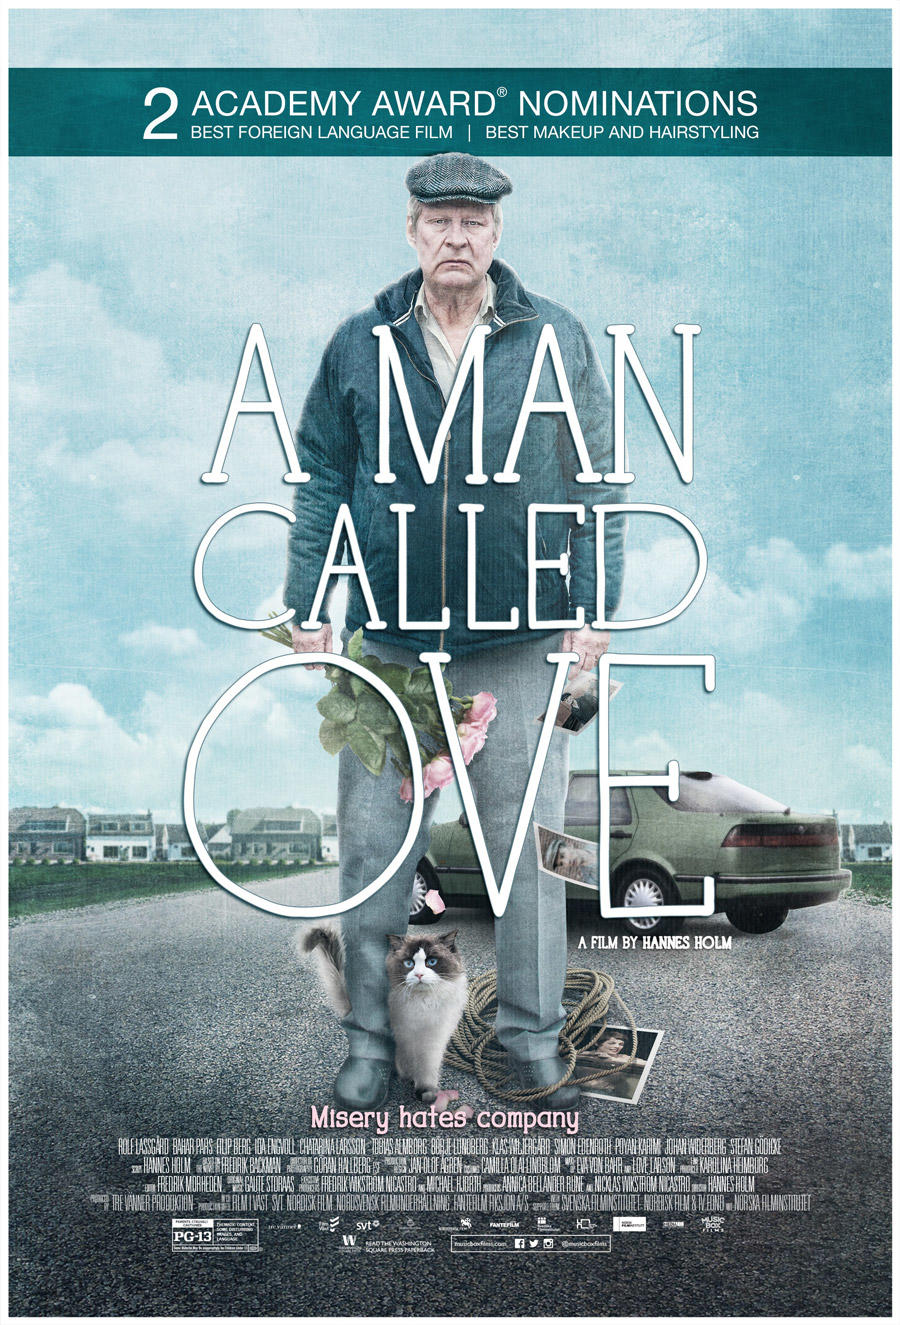 A Man Called Ove poster art